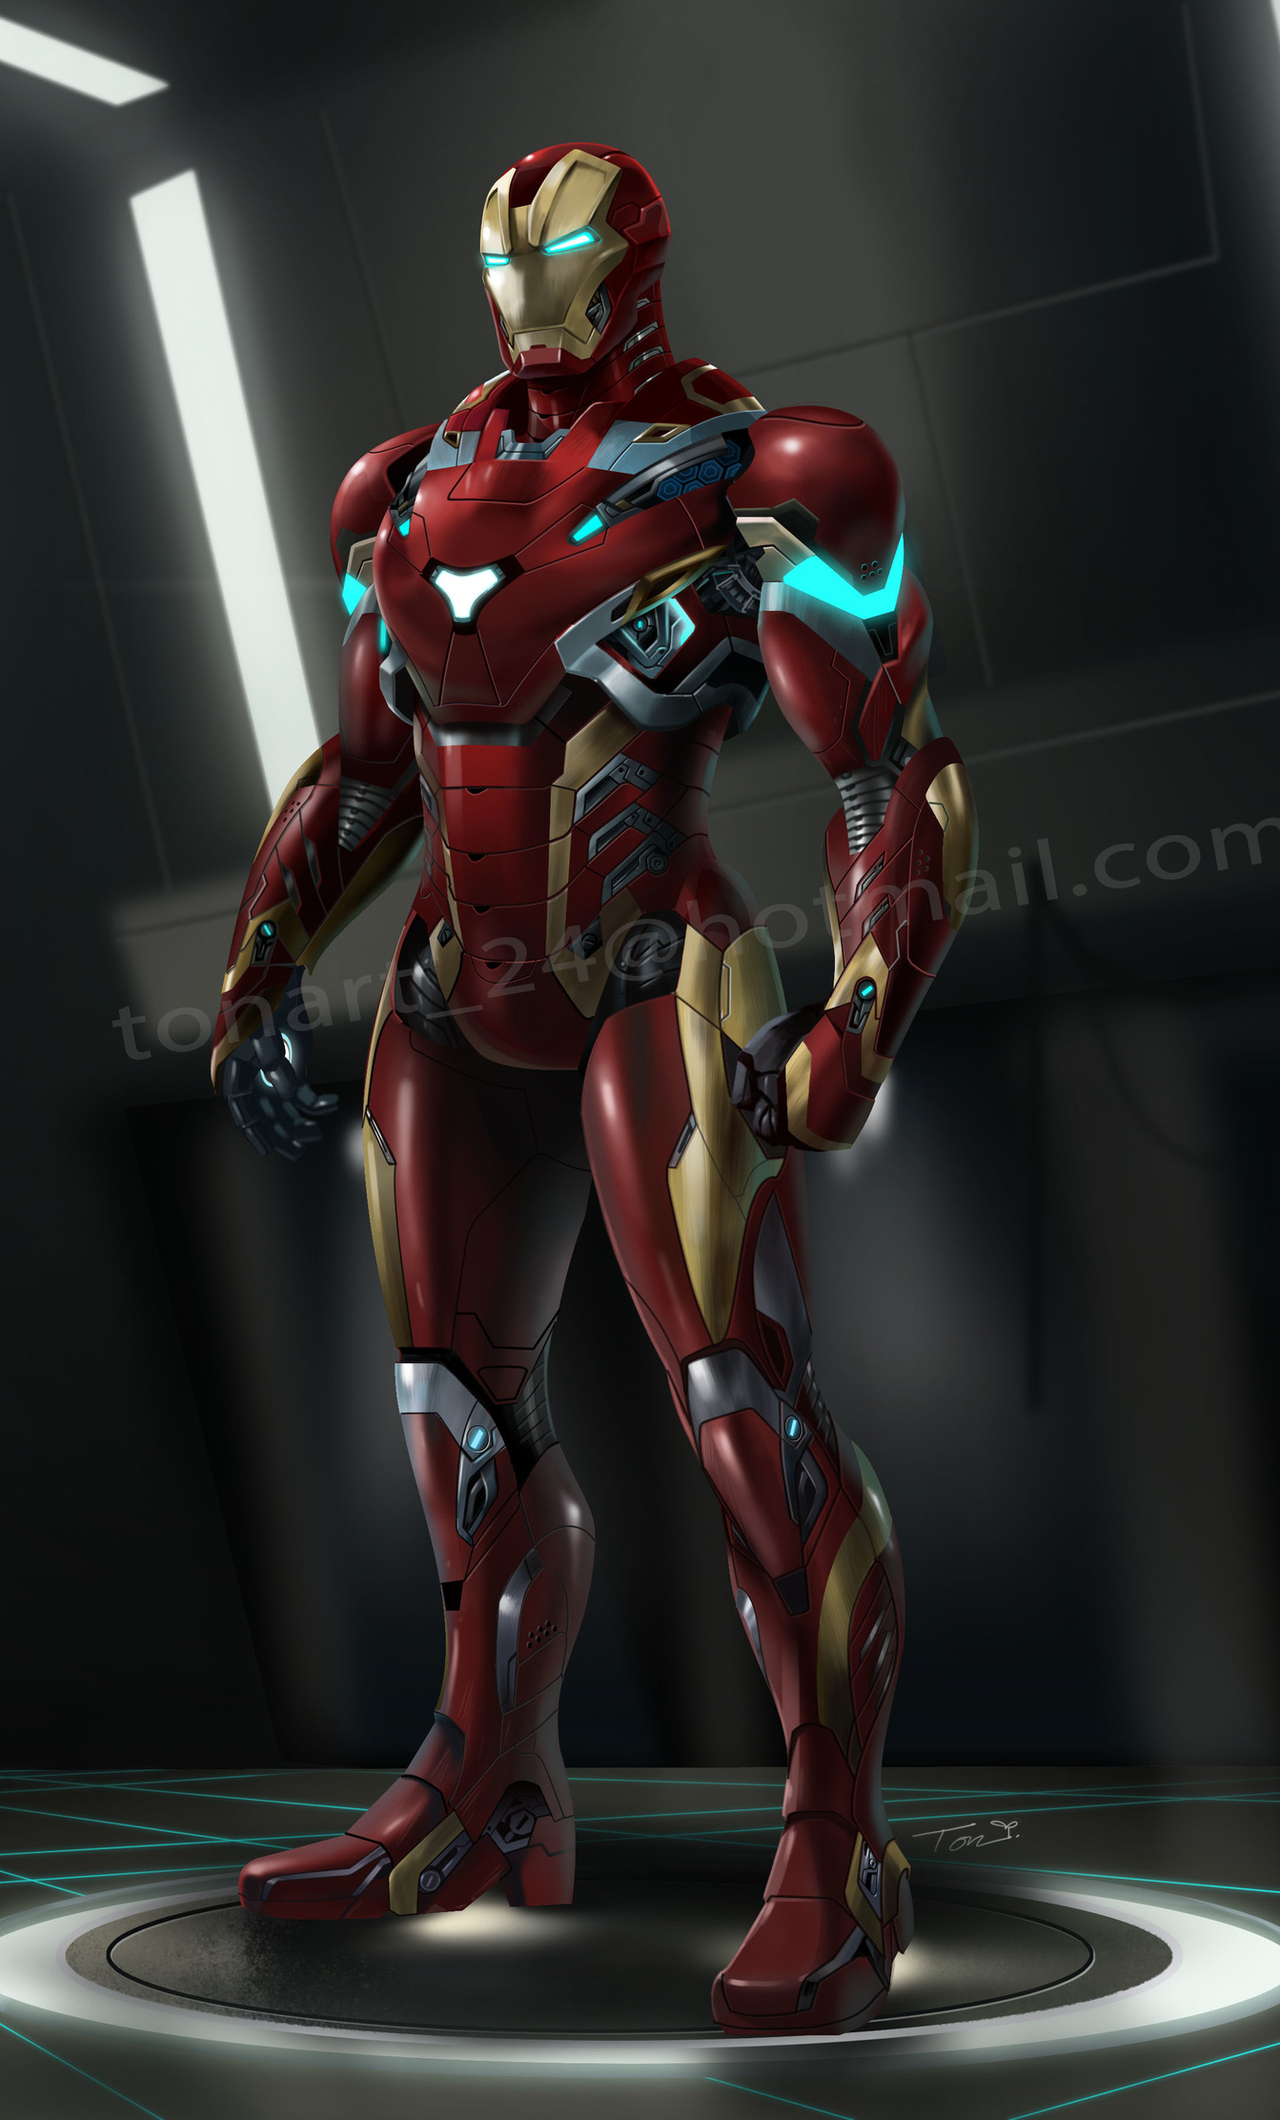 1280x2120 Iron Man Suit Artwork Iphone 6 Hd 4k Wallpapers Images